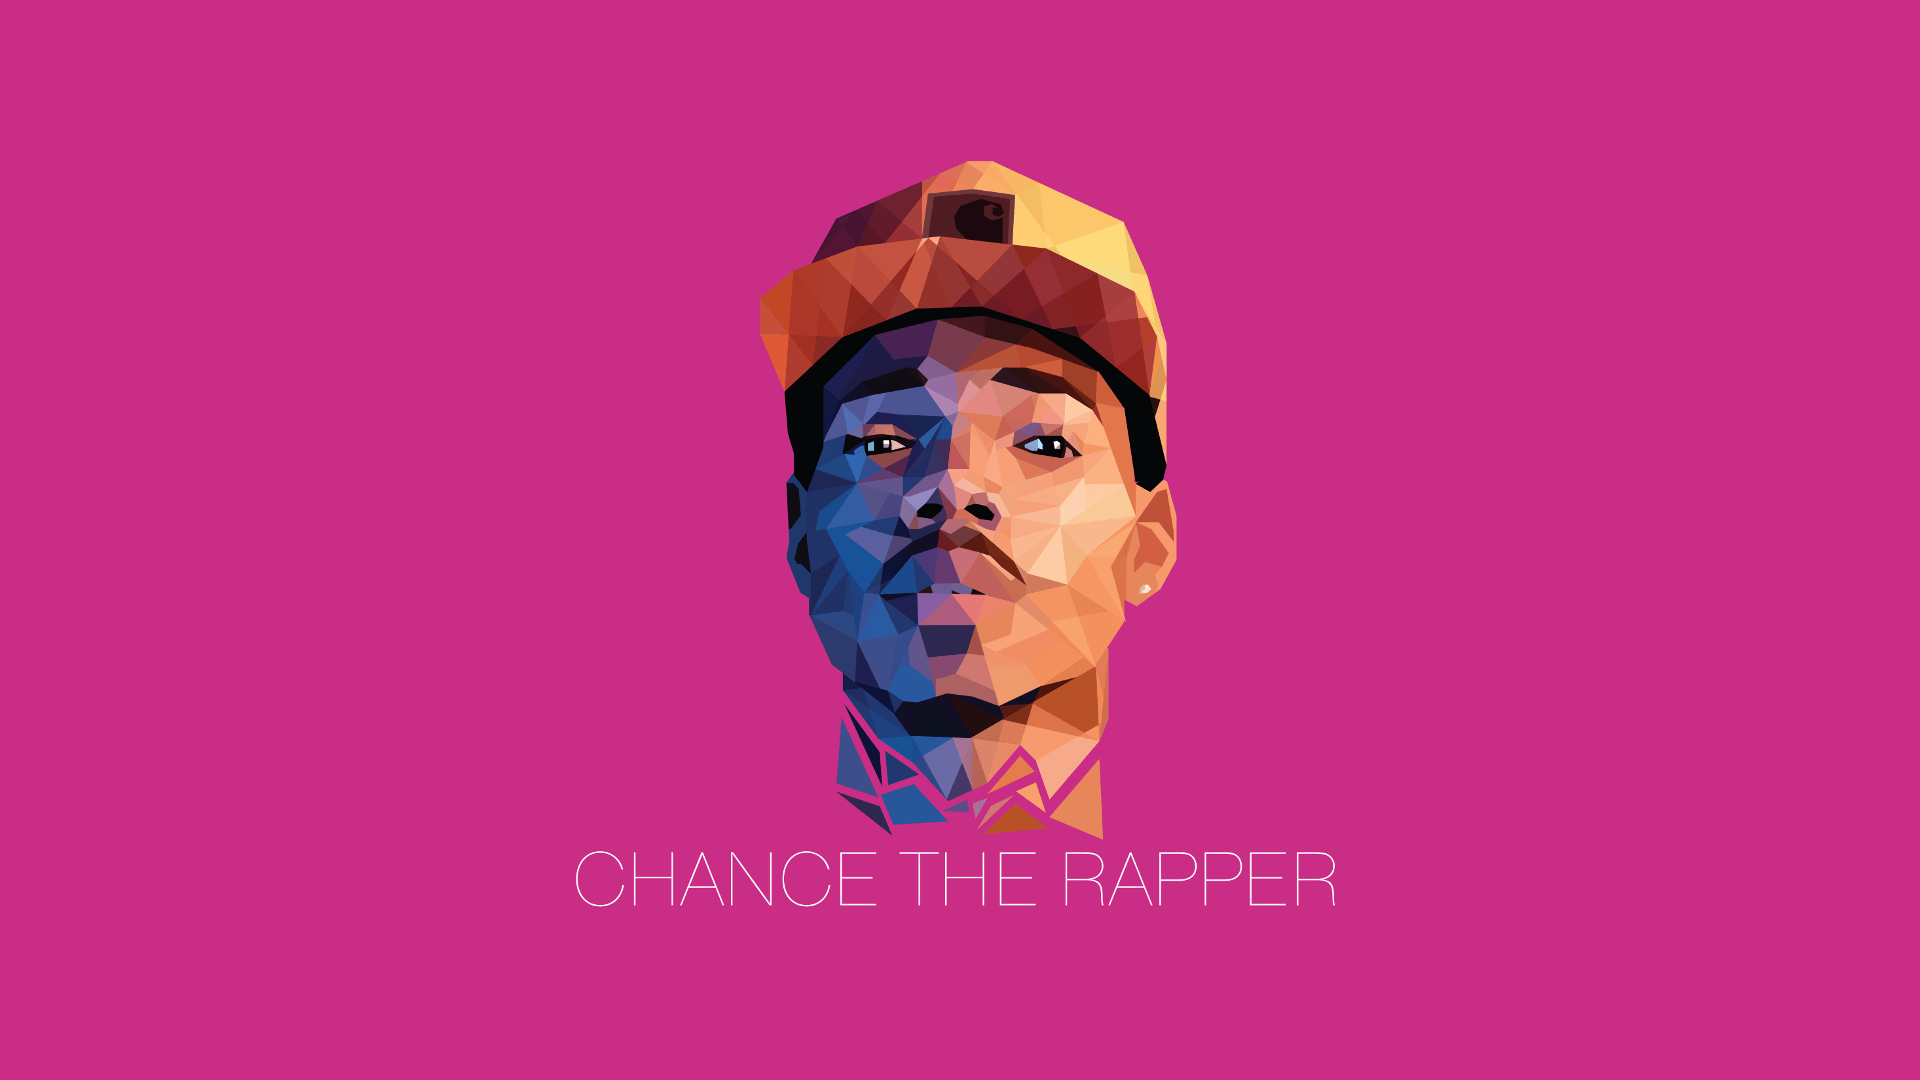 15 Chance The Rapper HD Wallpapers